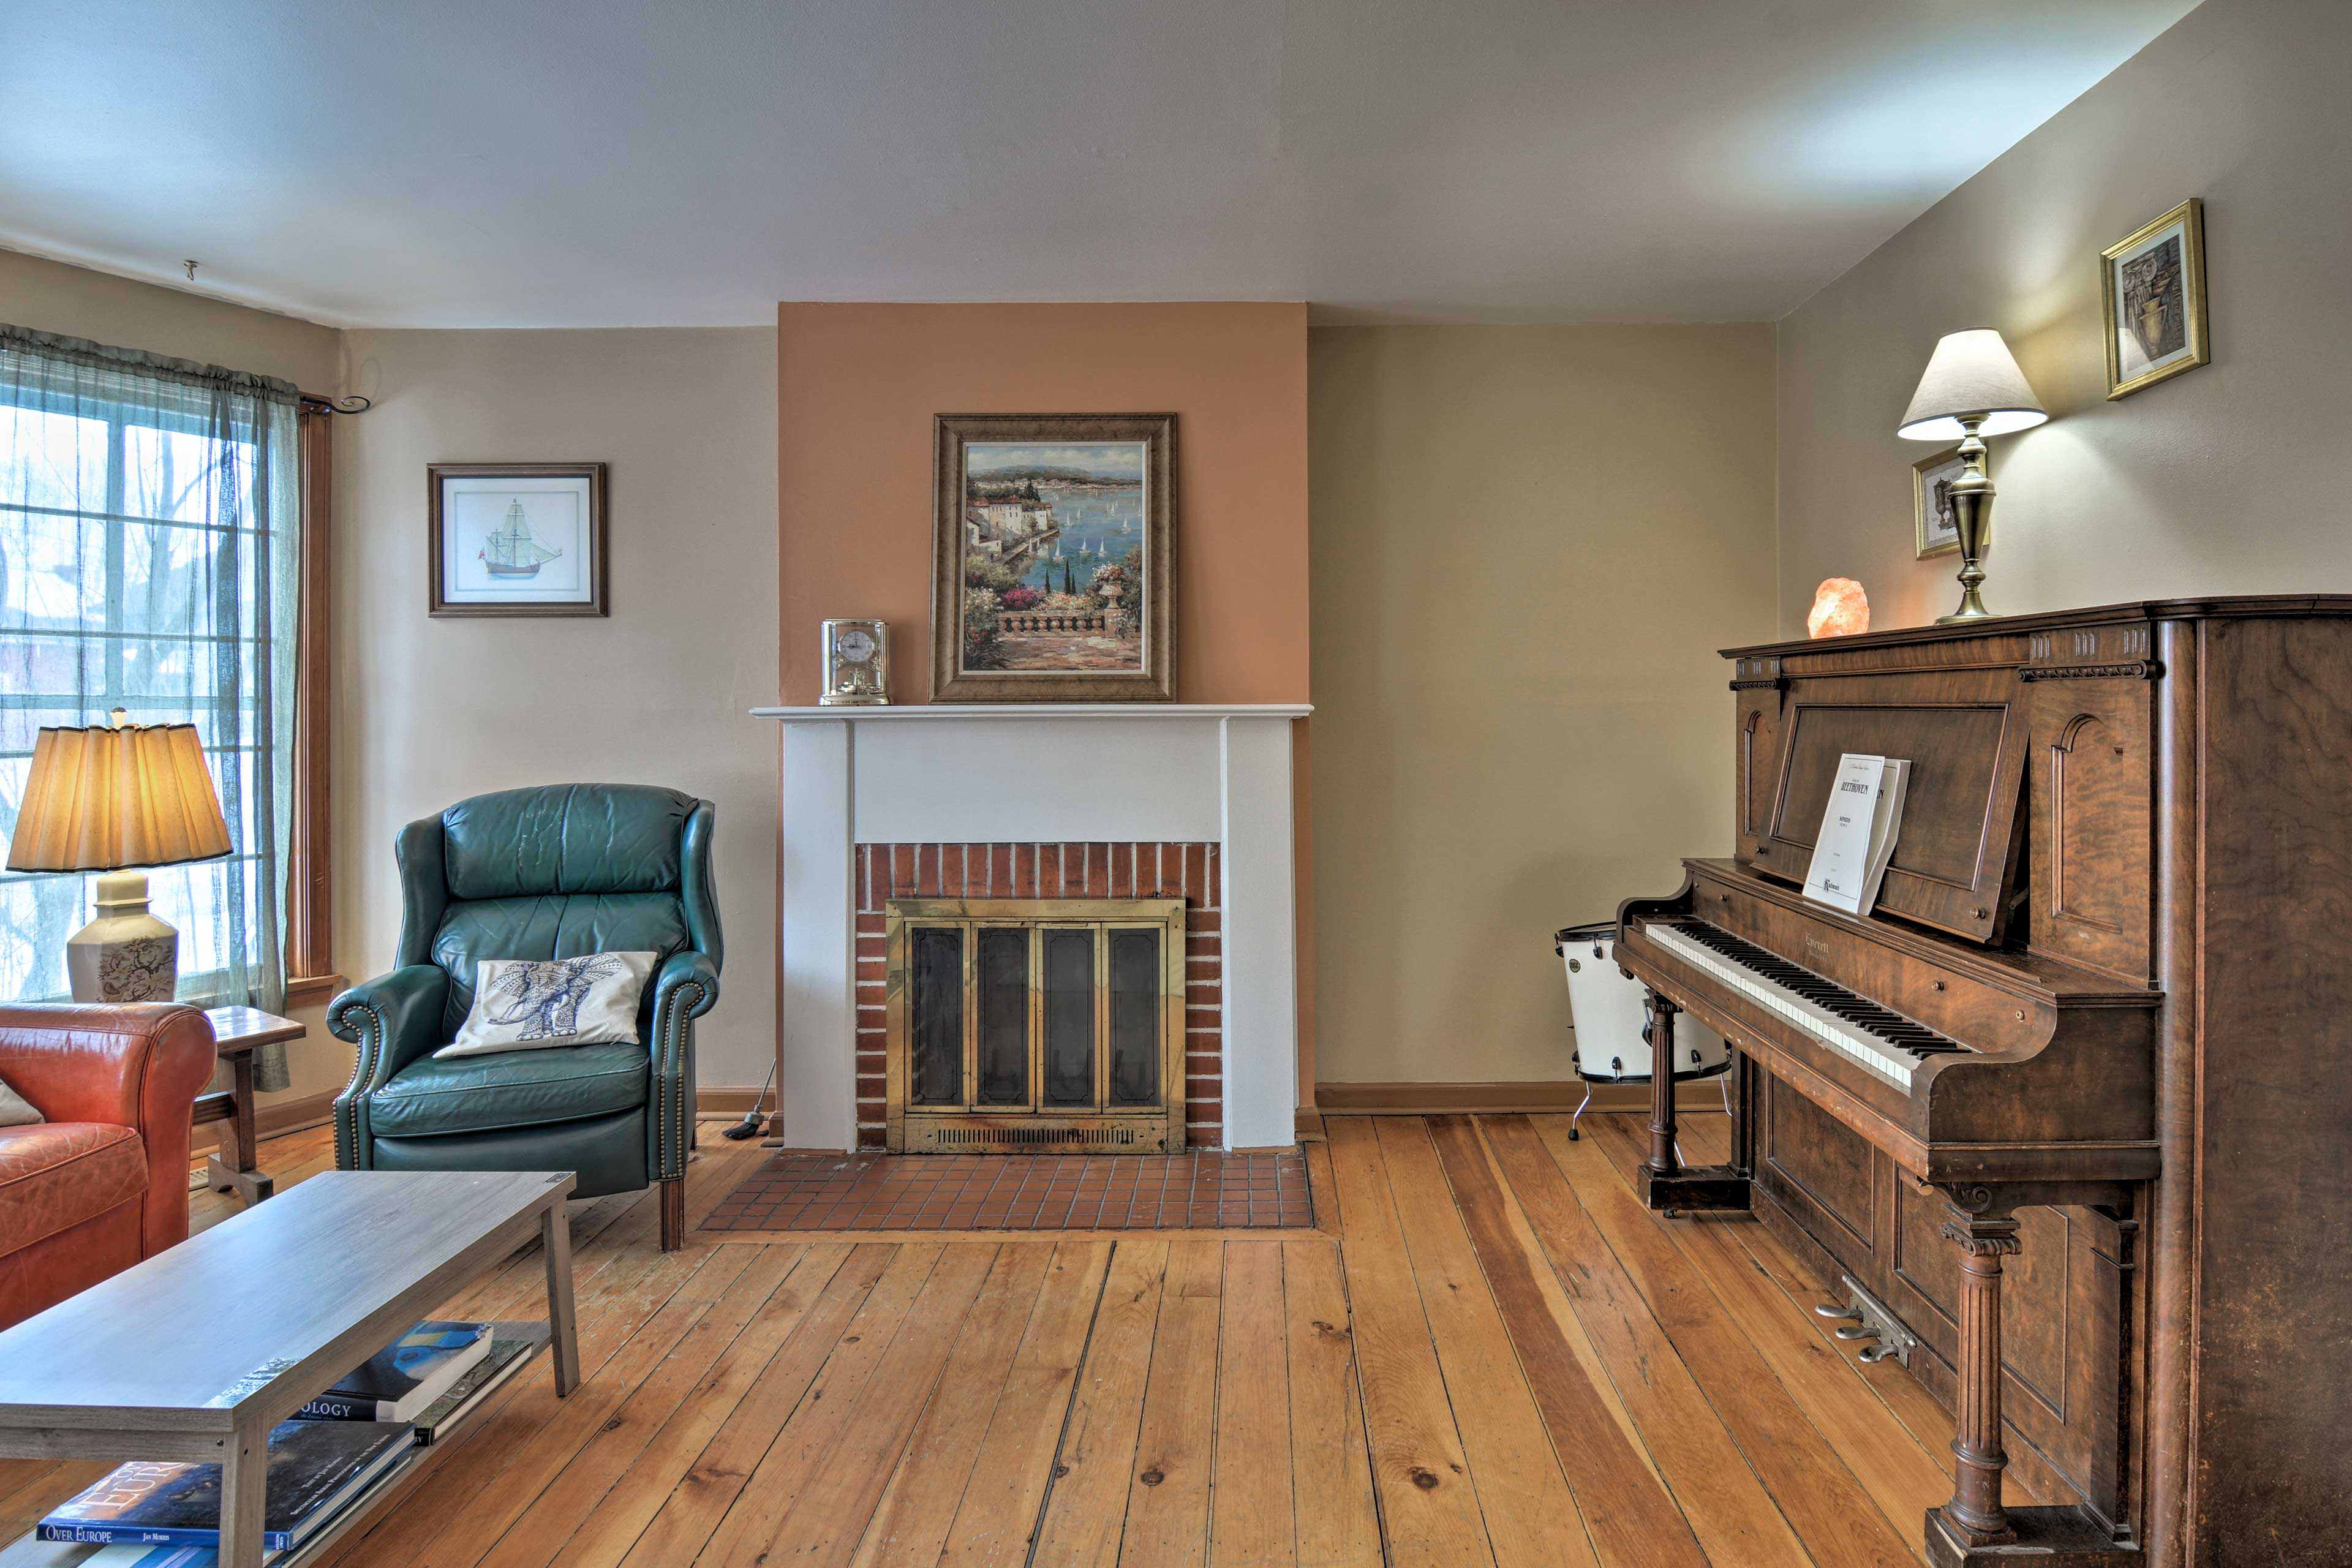 Warm up by the wood-burning fireplace in the living room.